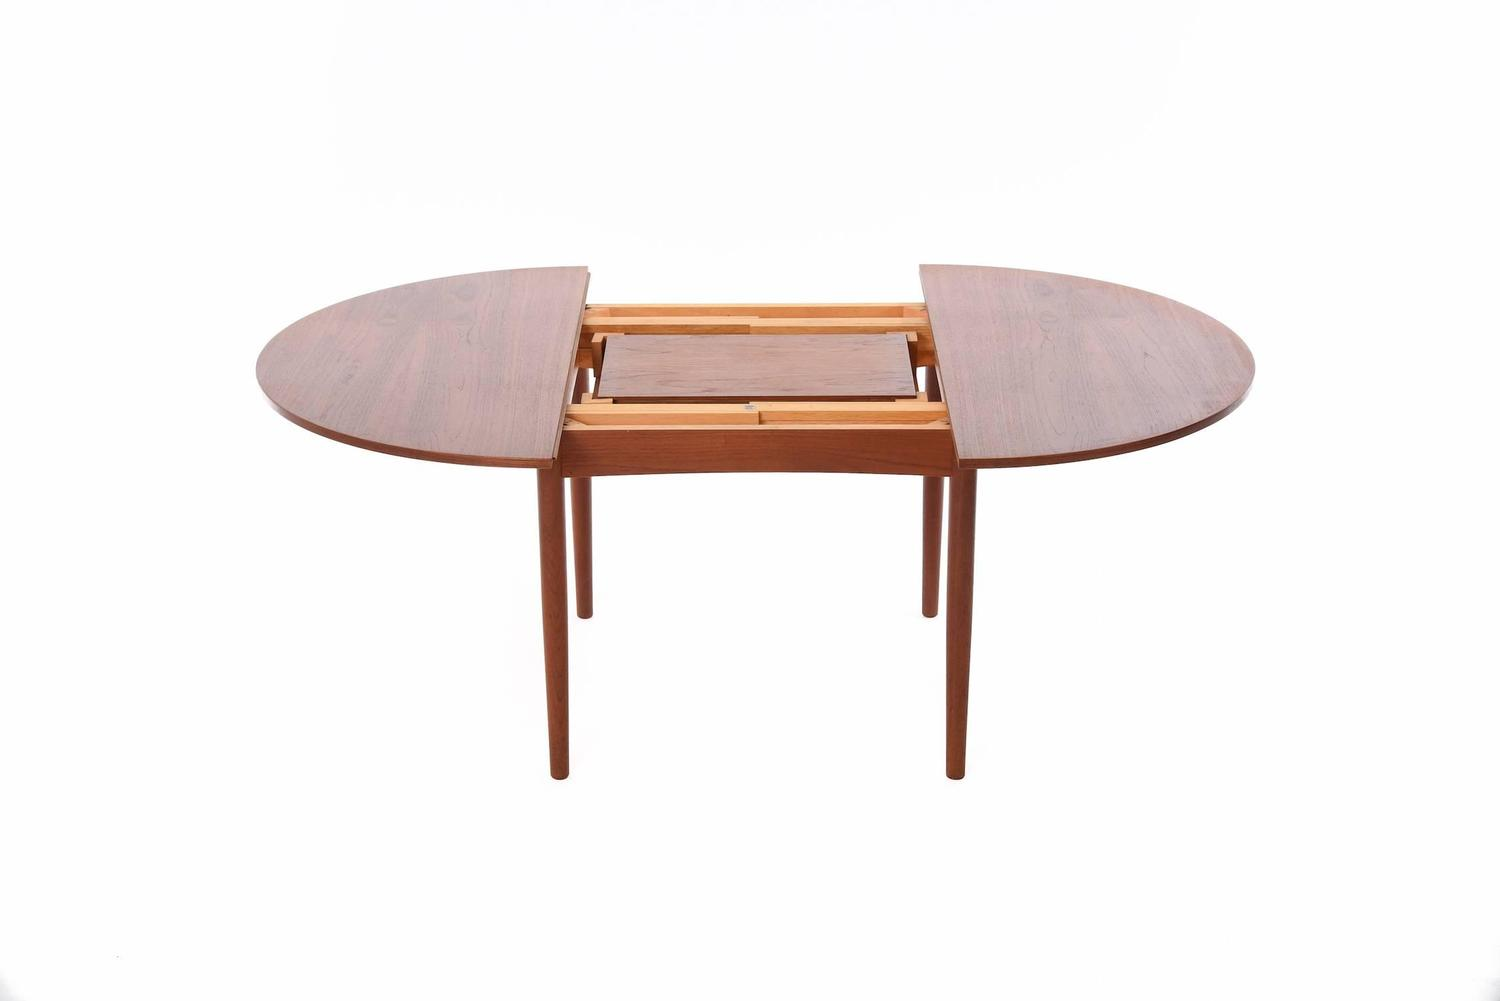 Danish modern dining table with self storing leaves at 1stdibs for Danish modern dining room table